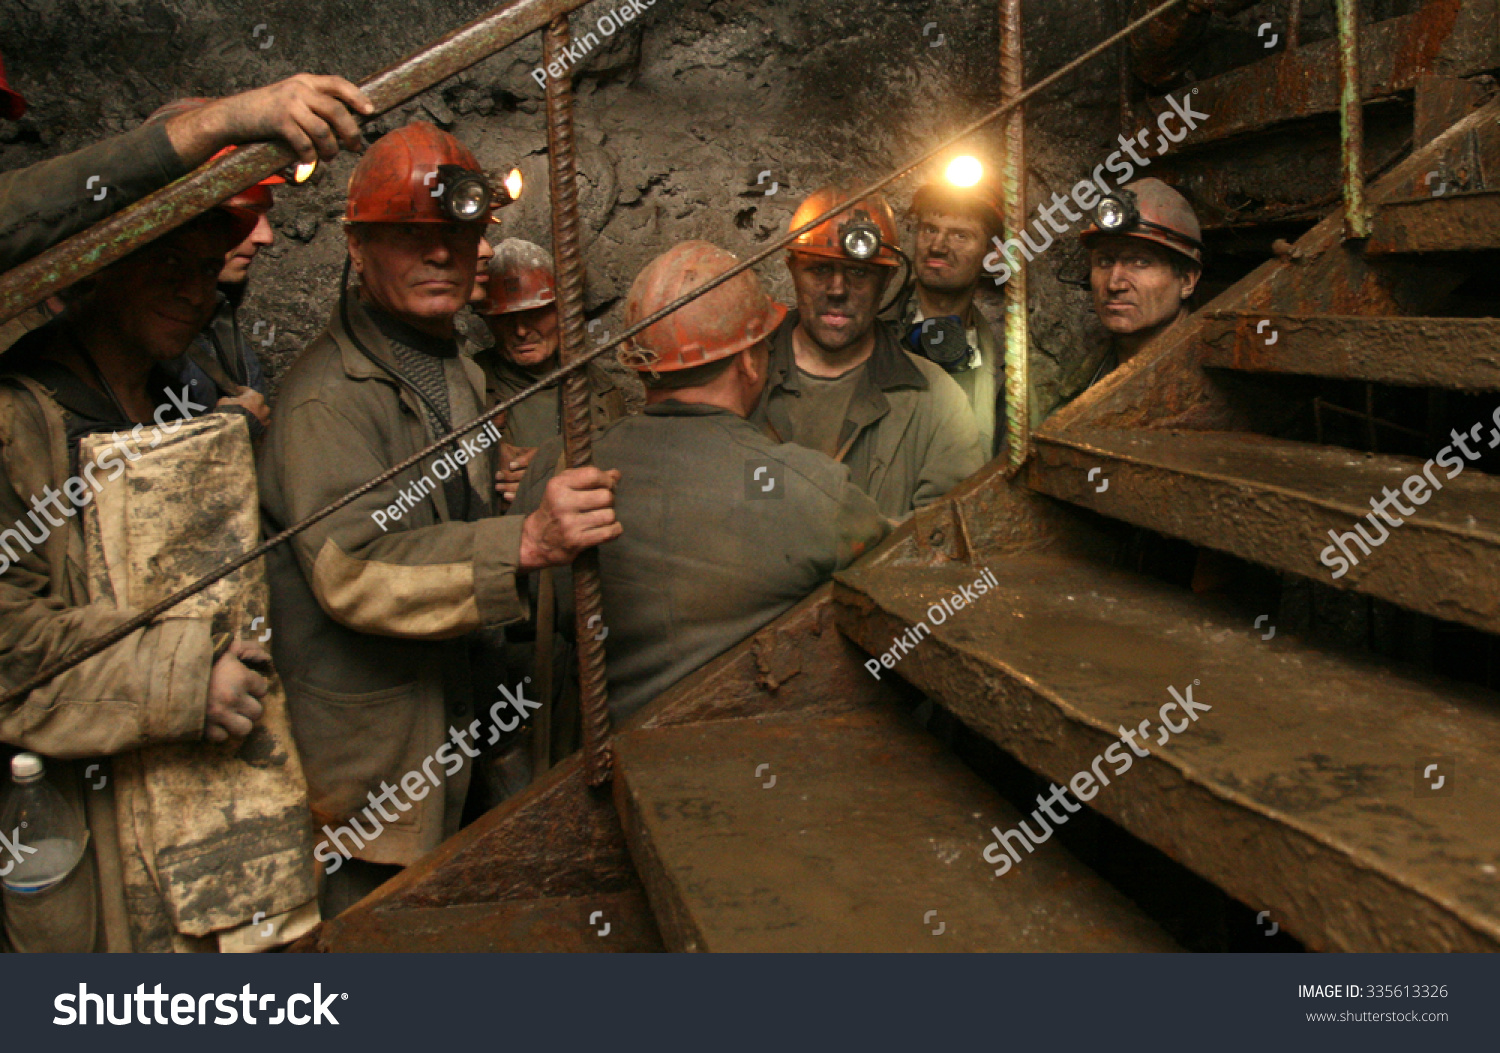 DONETSK UKRAINE September 26 2007 Coal miners at Abakumova mine wait to lower into the breast by an elevator for shift change